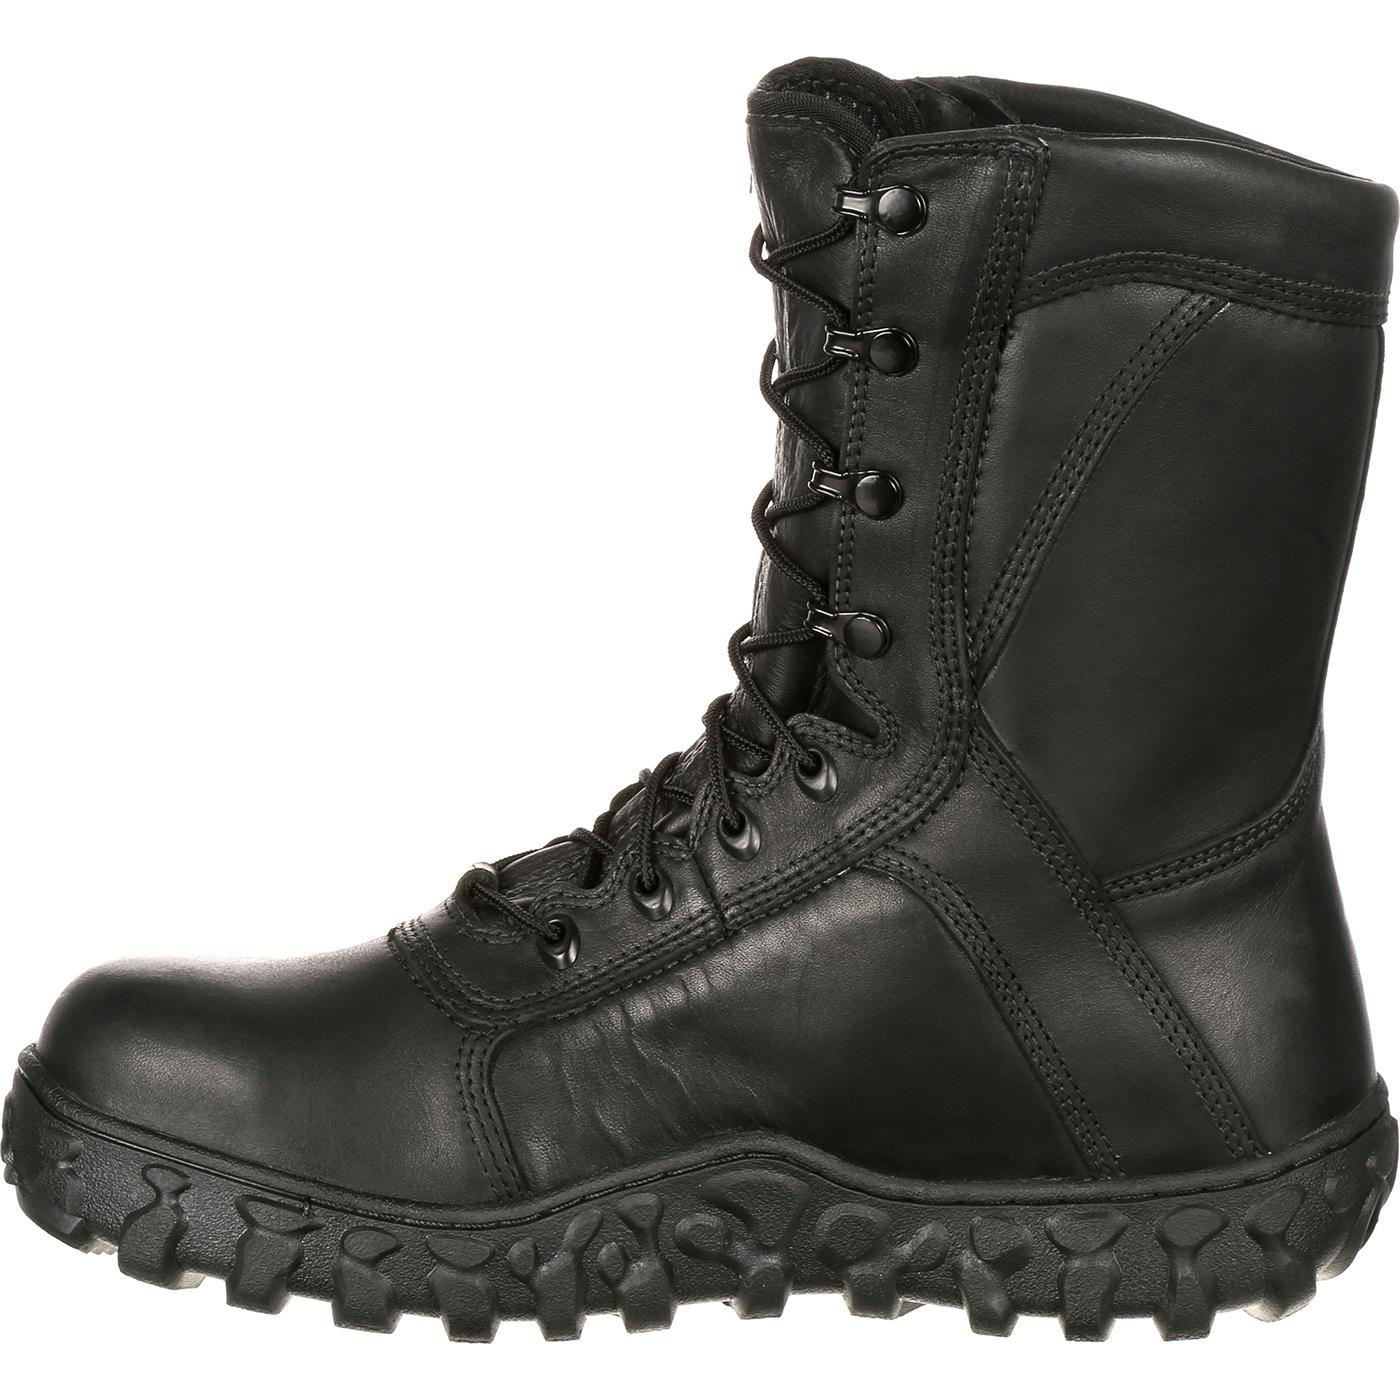 Rocky S2V Steel Toe Tactical Military Boot made in USA